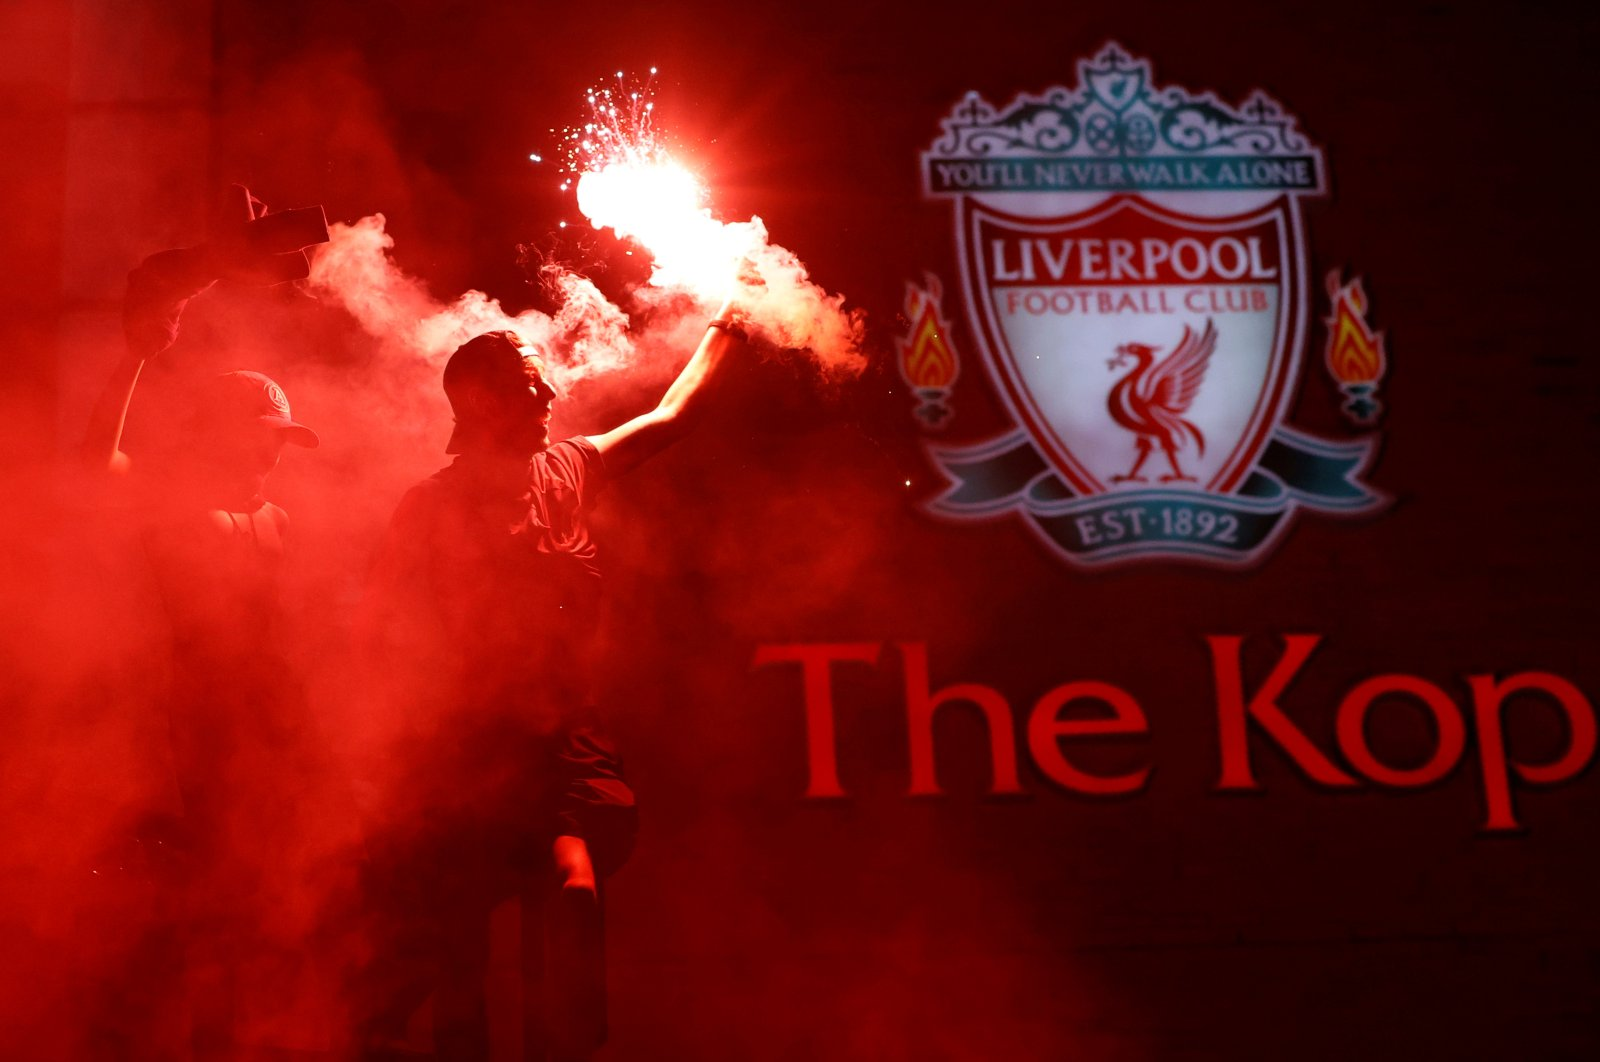 Liverpool fans celebrate winning the Premier League with flares outside Anfield stadium in Liverpool, Britain, June 25, 2020. (Reuters Photo)